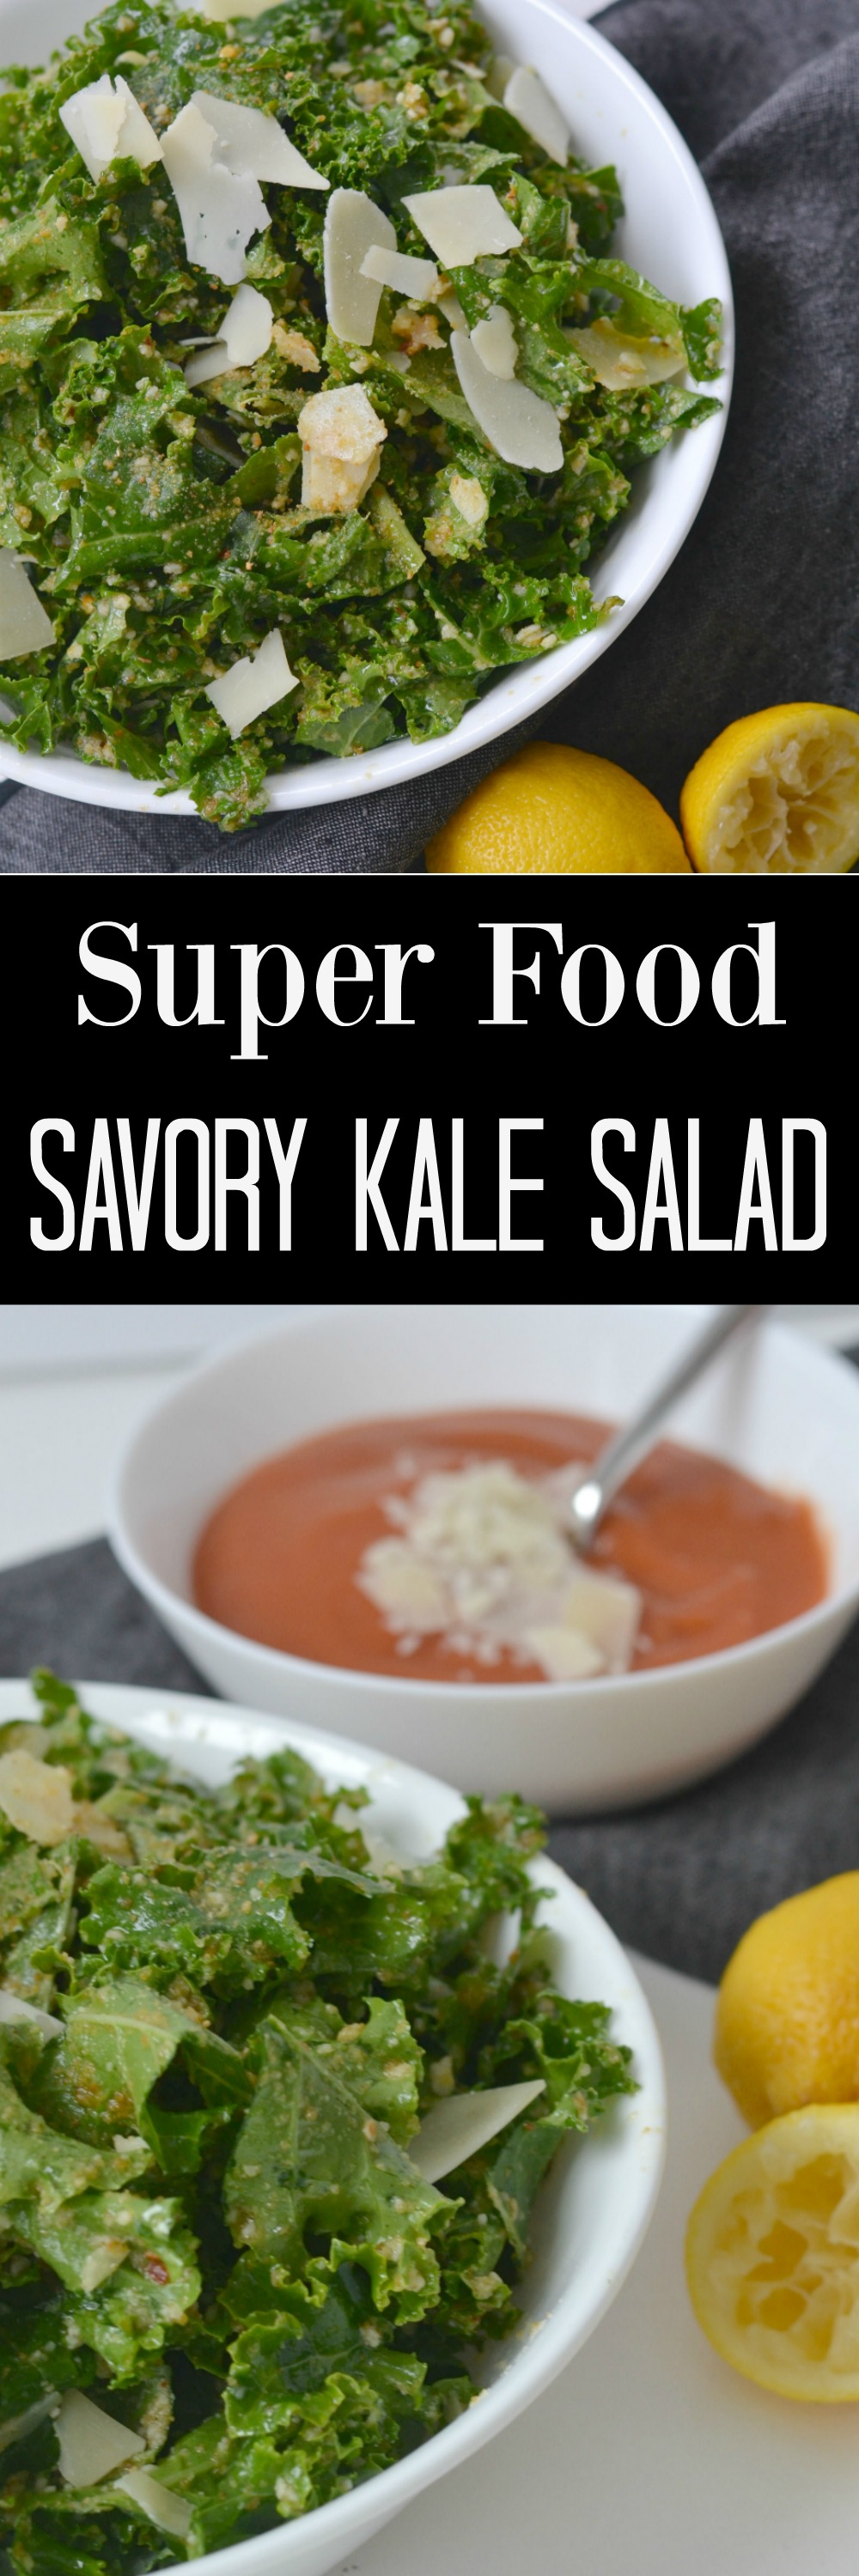 Super Food Savory Kale Salad